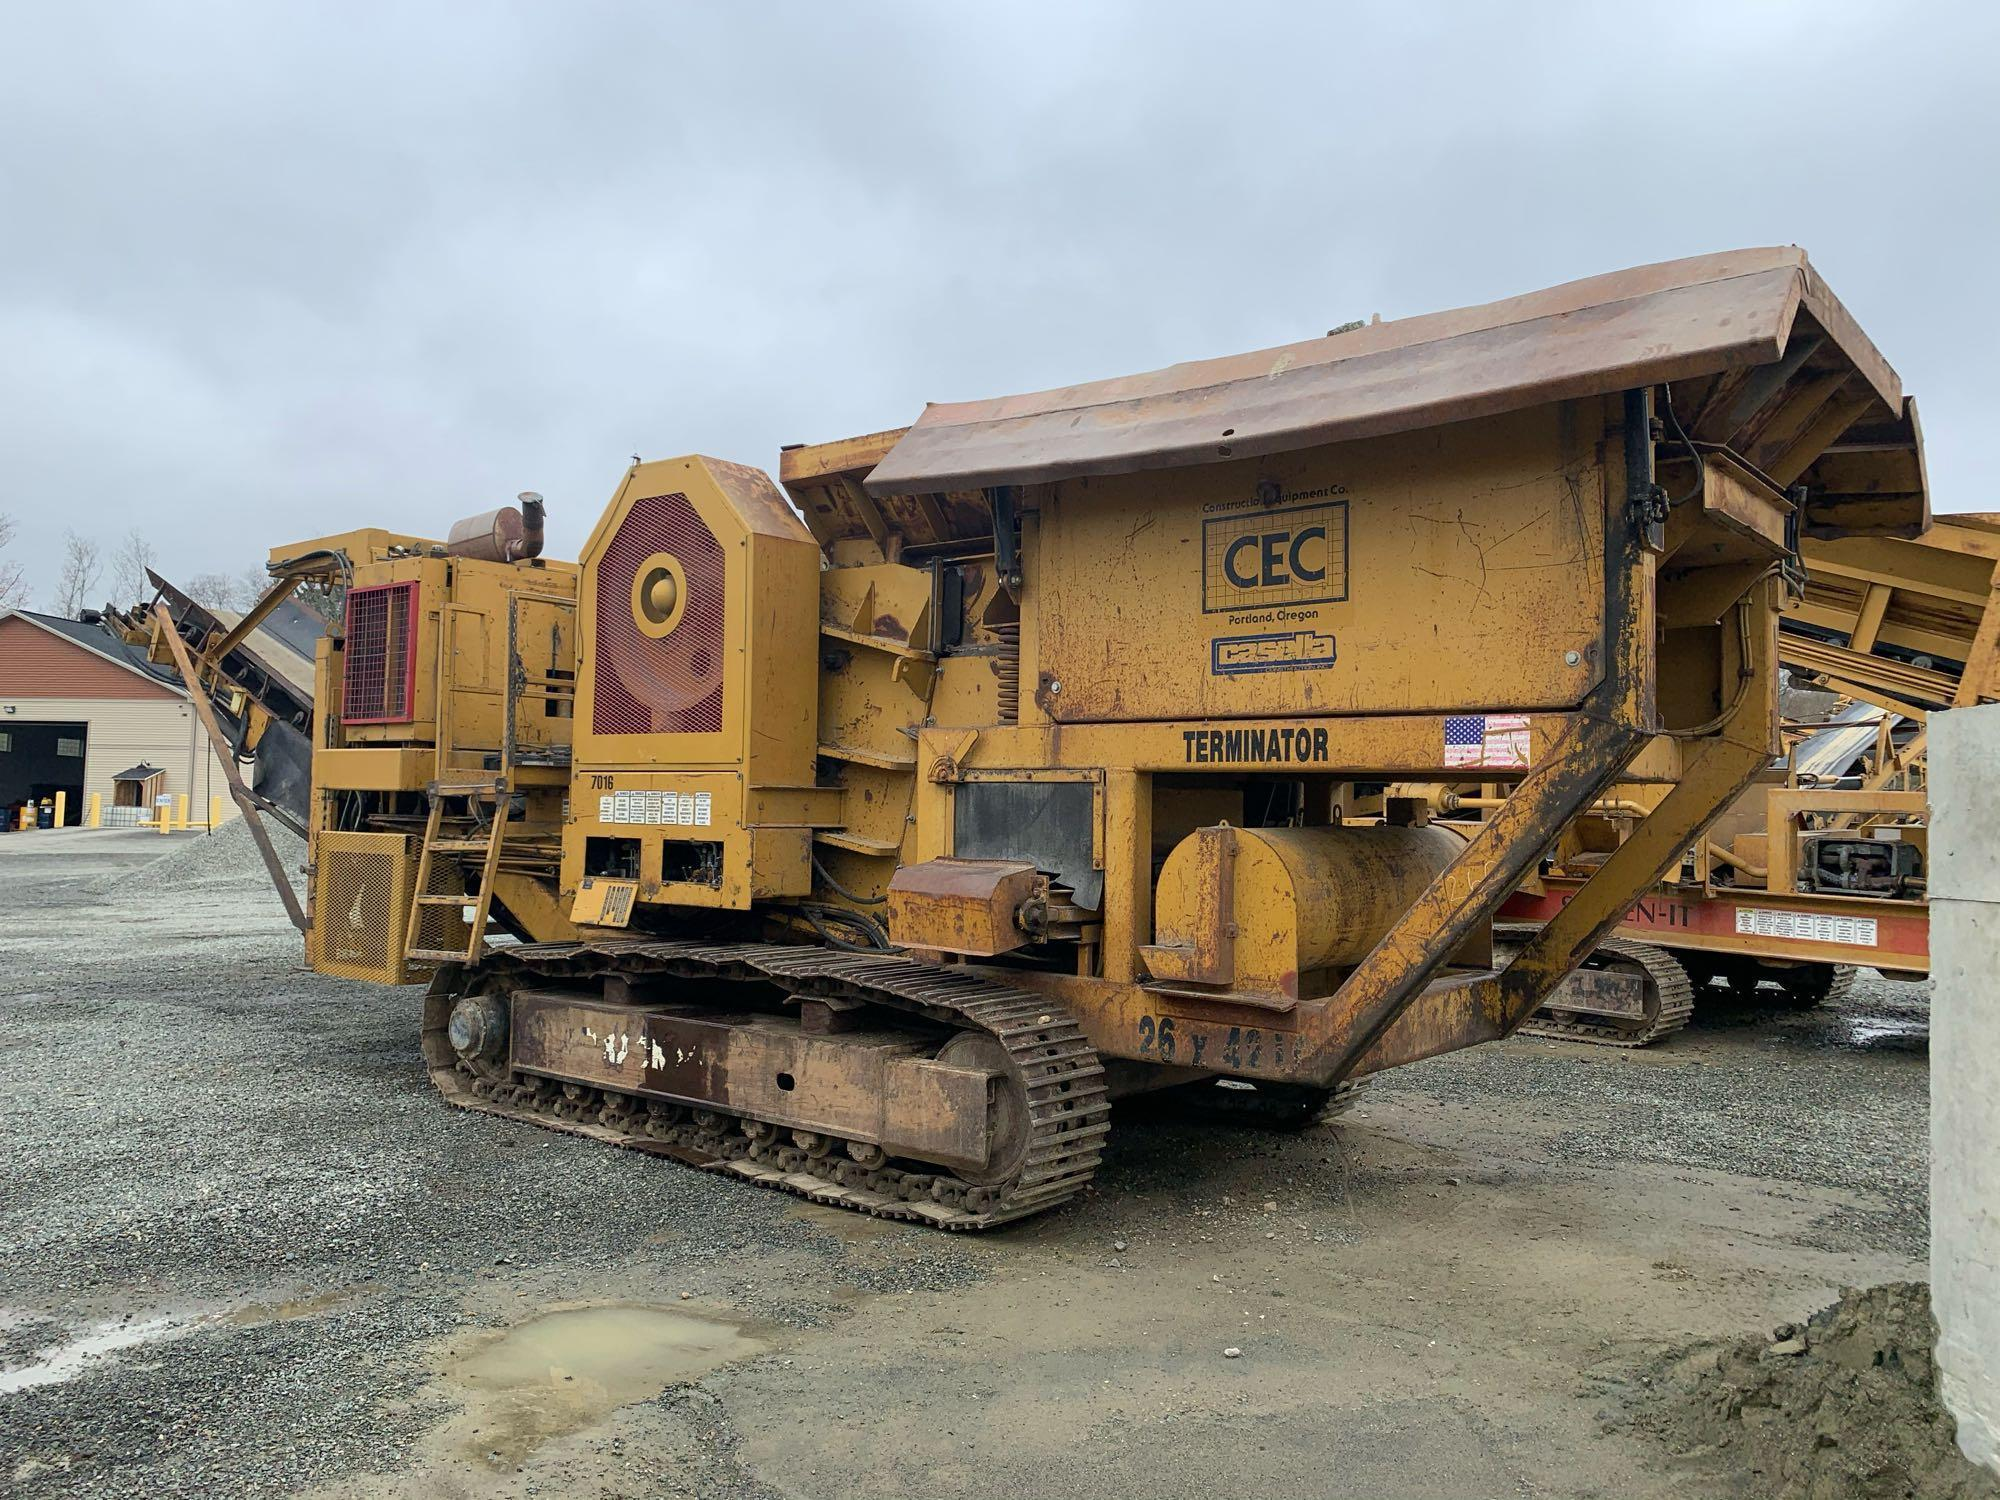 CEC 26X42LC JAW CRUSHING PLANT AGGREGATE EQUIPMENT